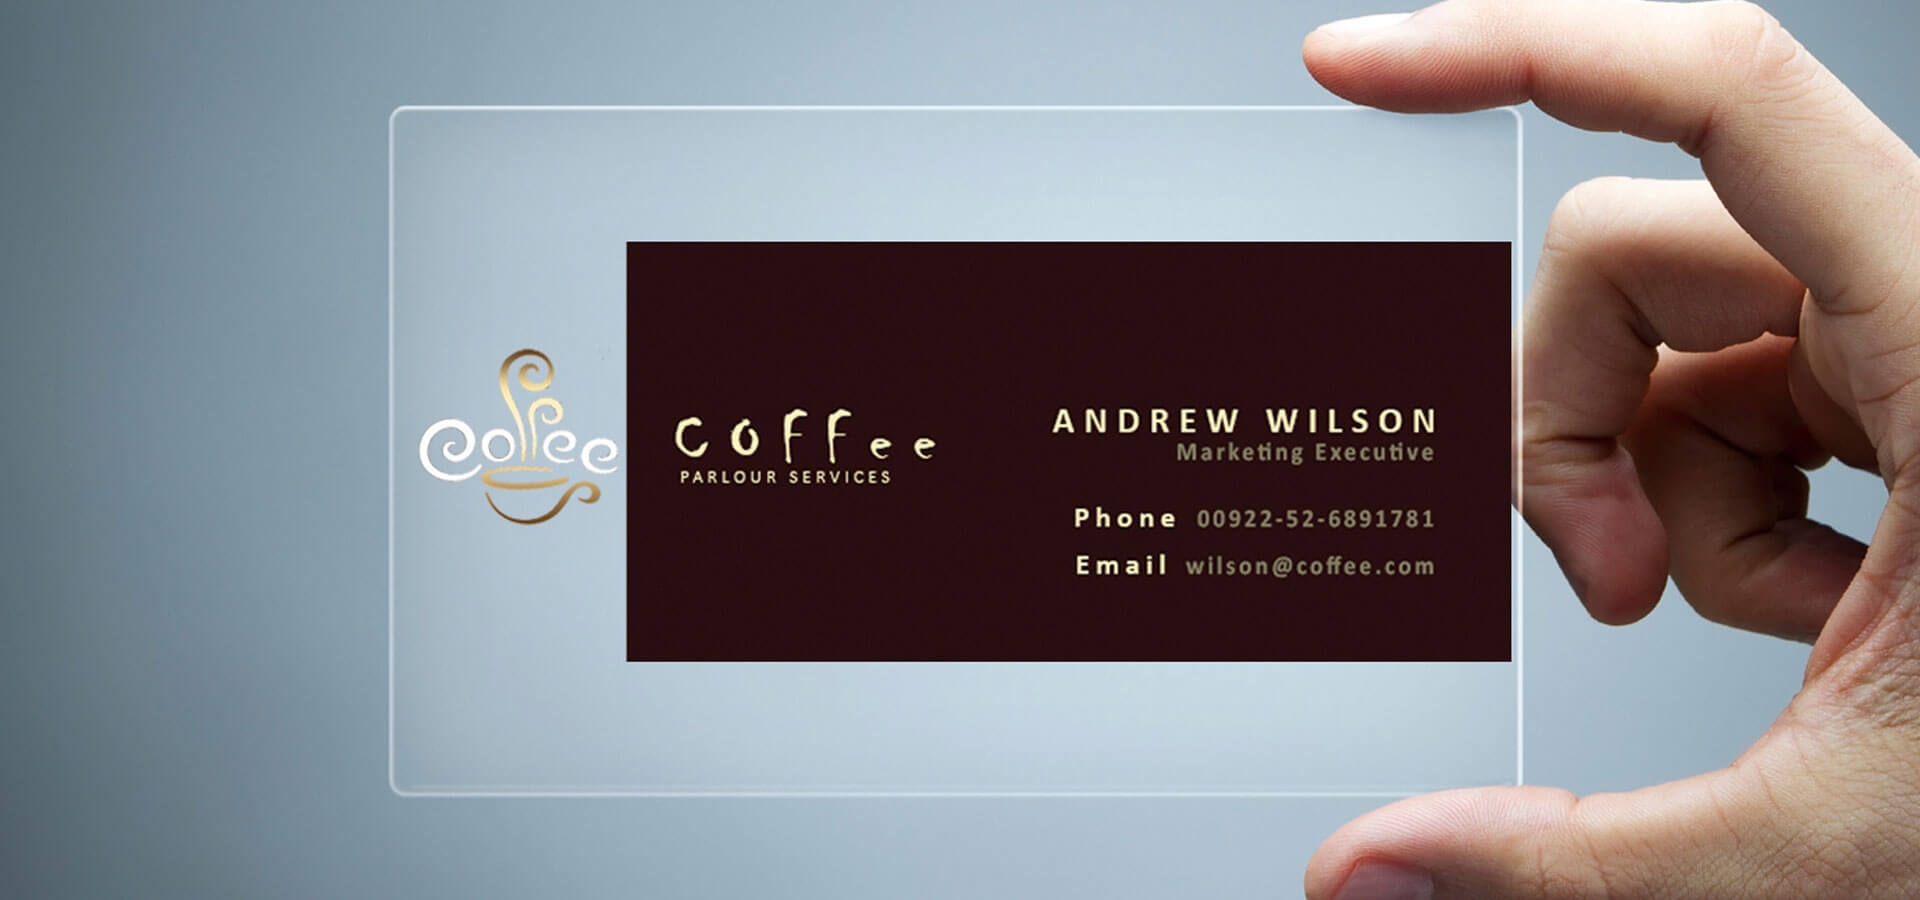 26+ Transparent Business Card Templates - Illustrator, Ms Inside Visiting Card Illustrator Templates Download